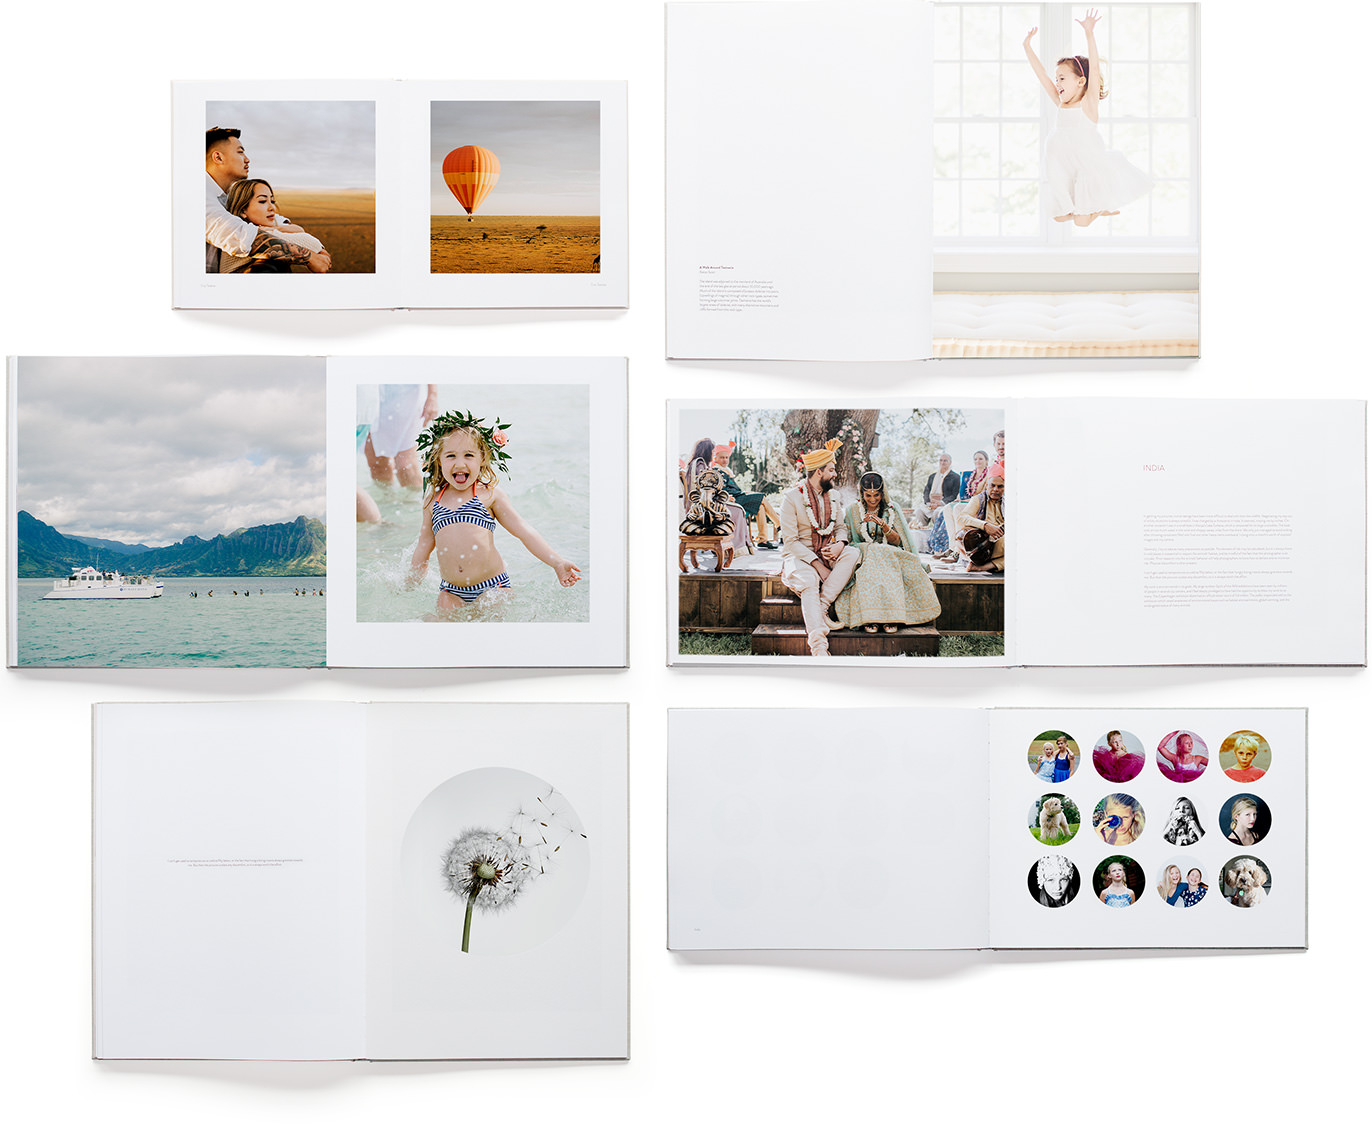 Range of classic photo books with various spread designs.